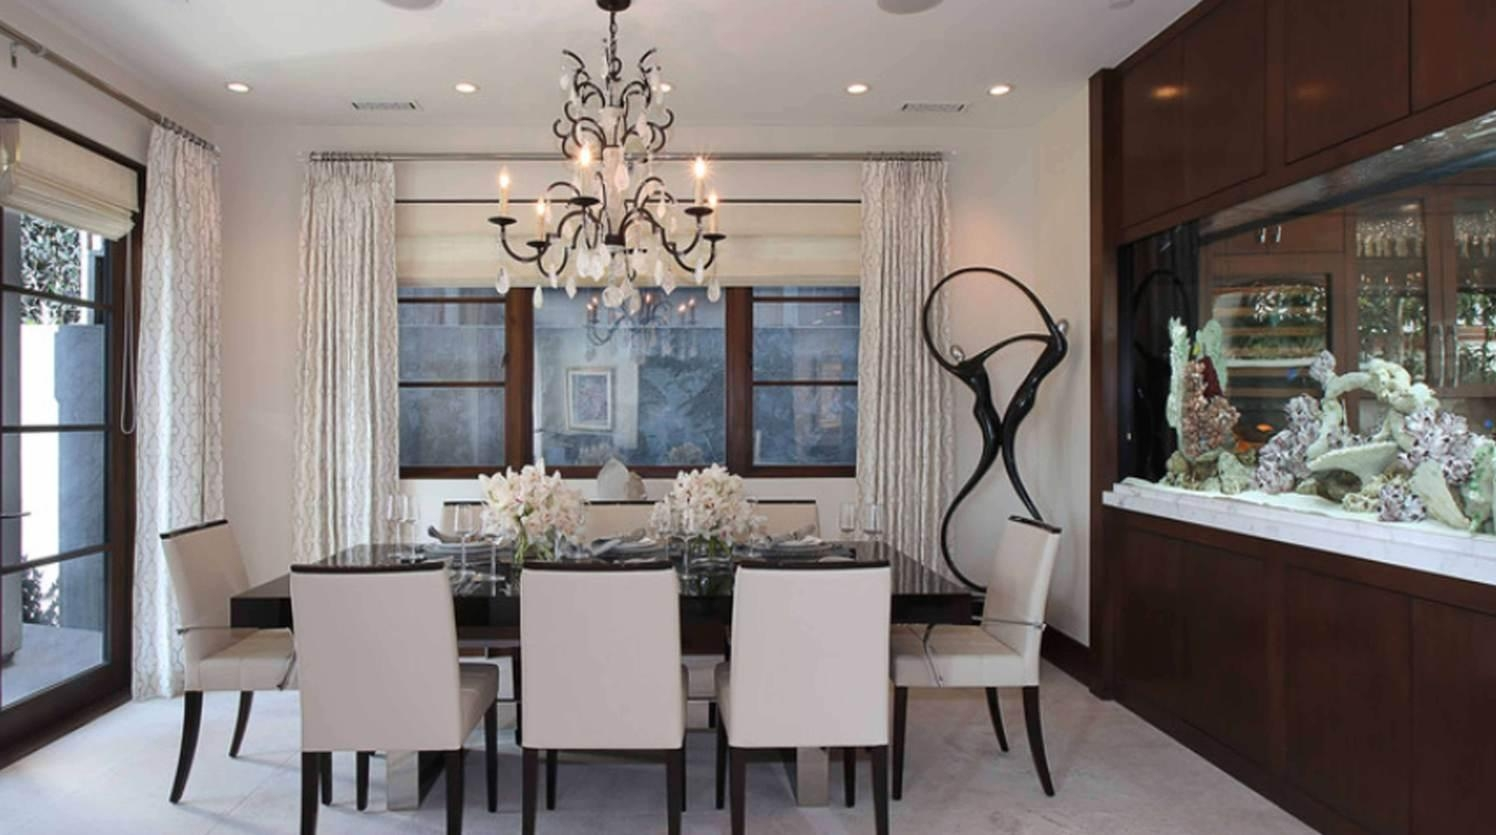 Dining Room : Wall Art For Dining Room Stunning Metal Wall Art On With Regard To Oversized Metal Wall Art (Image 5 of 23)